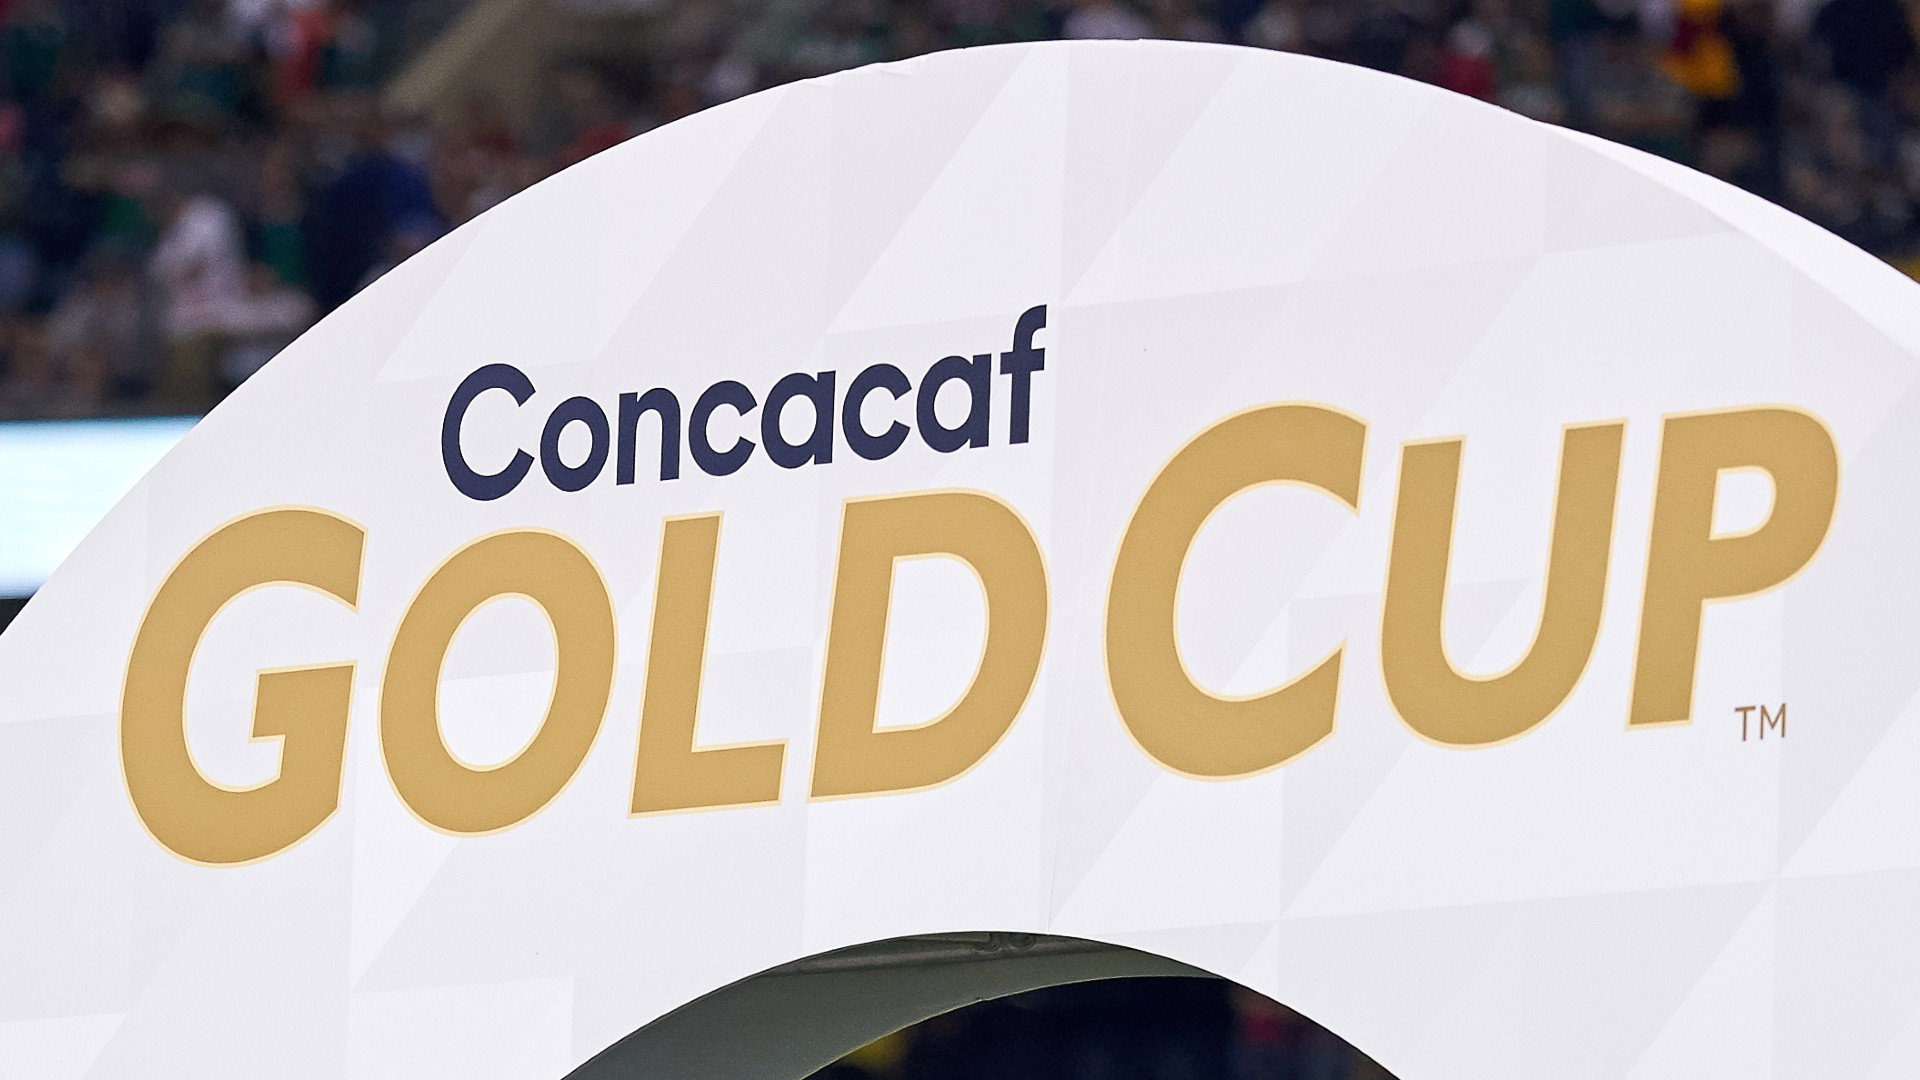 Gold Cup results, standings 2021: Updated scores, tables, highlights from CONCACAF soccer tournament